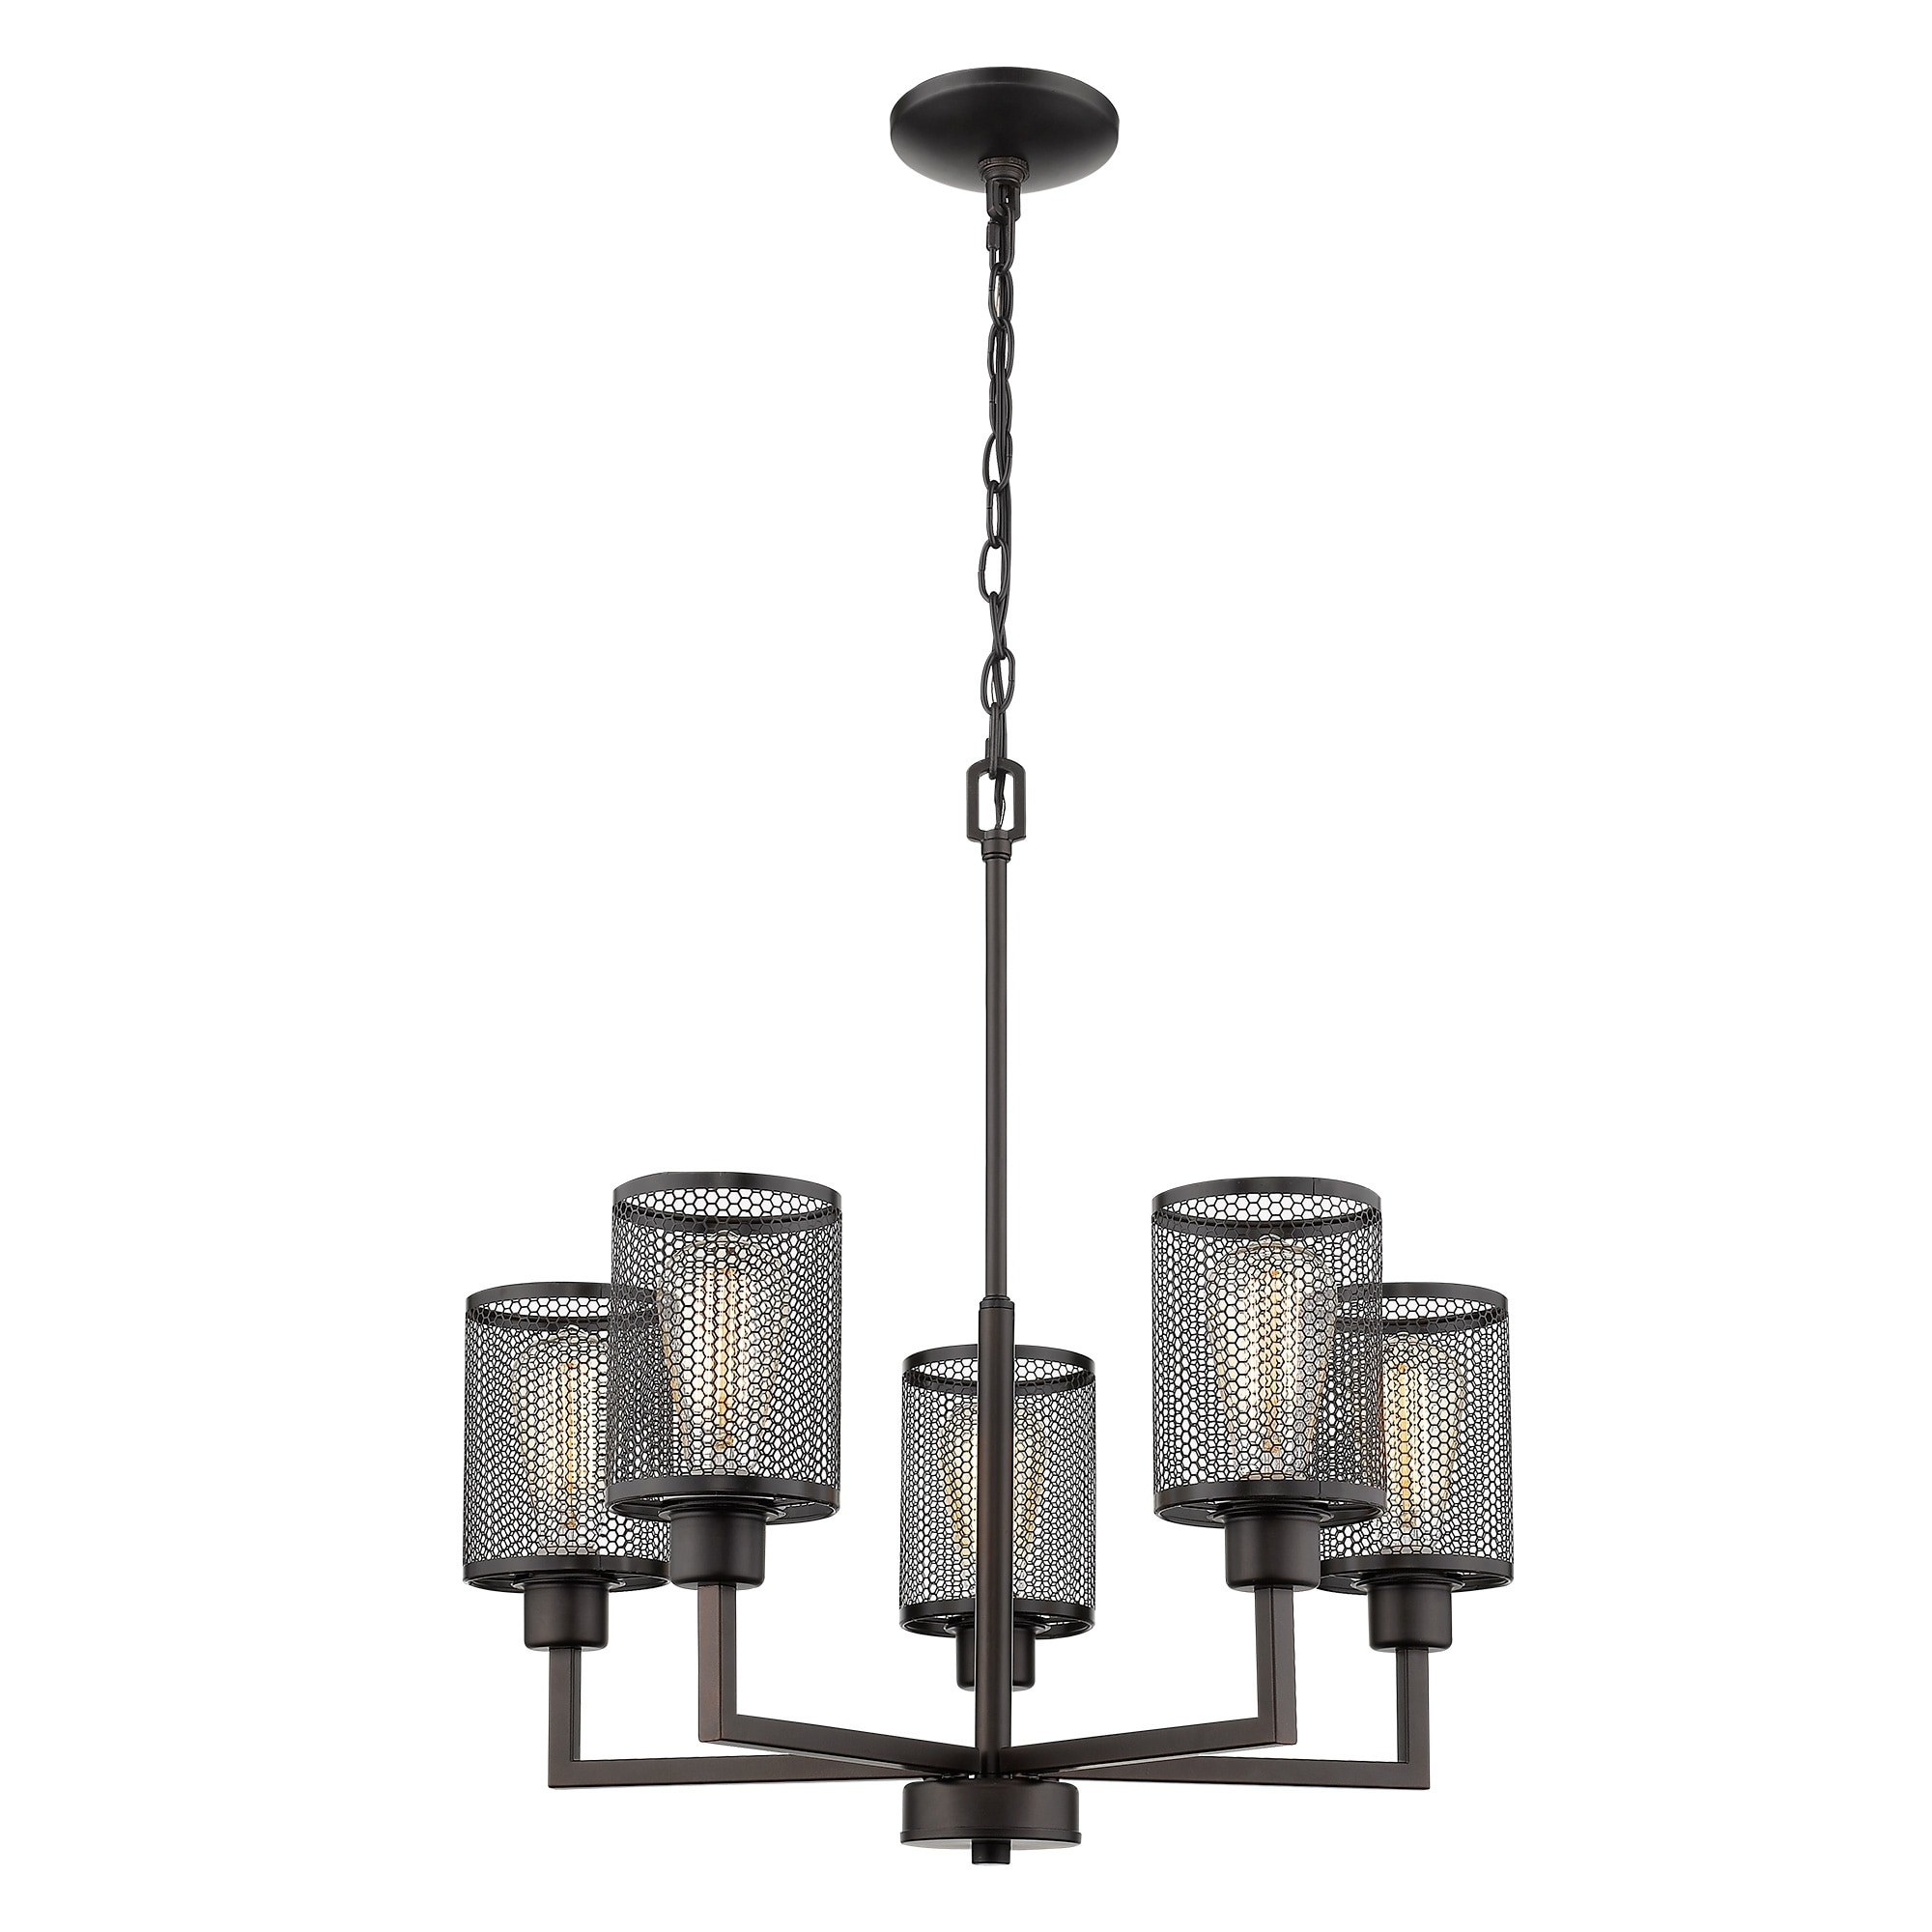 Eglo Verona 5-Light Chandelier with Oil-Rubbed Bronze Finish